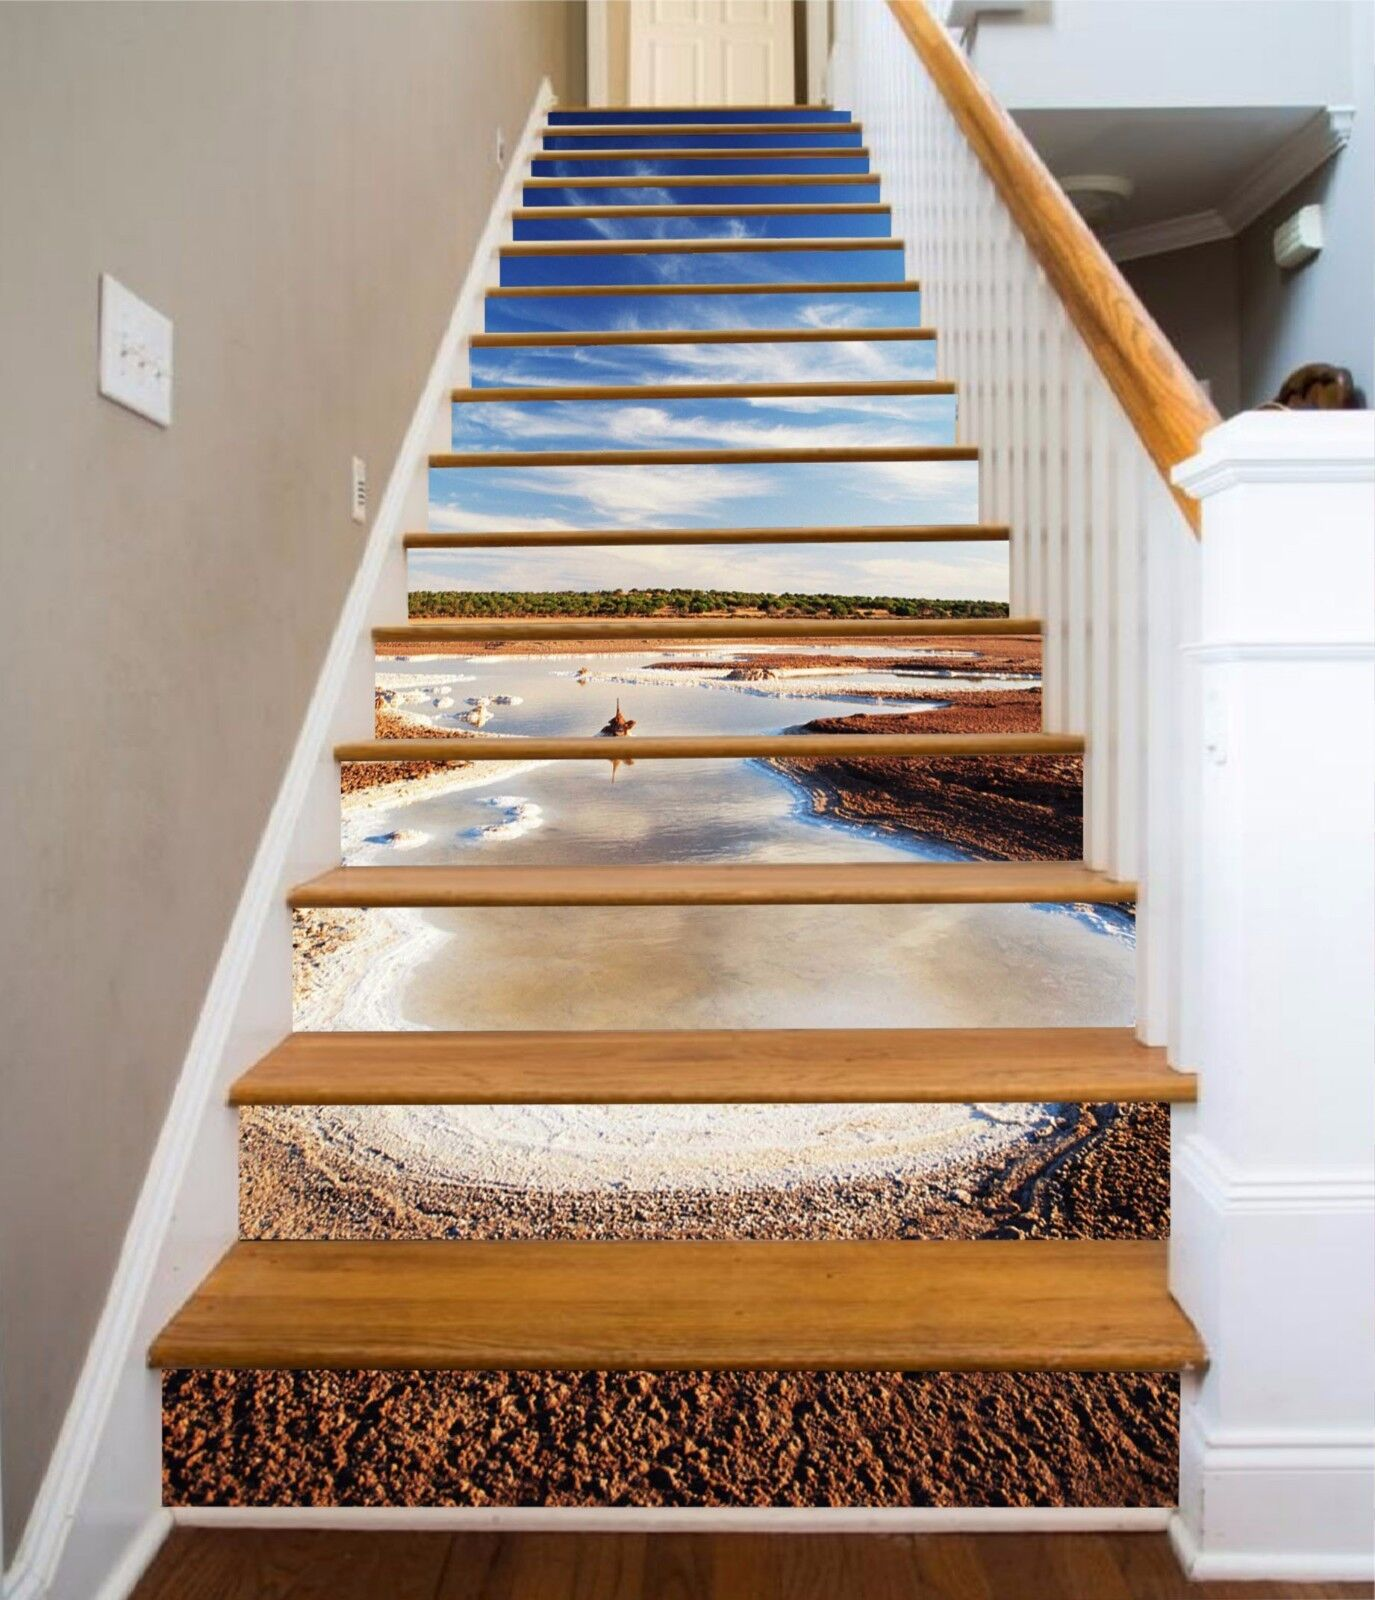 3D Sky field 7 Stair Risers Decoration Photo Mural Vinyl Decal Wallpaper UK